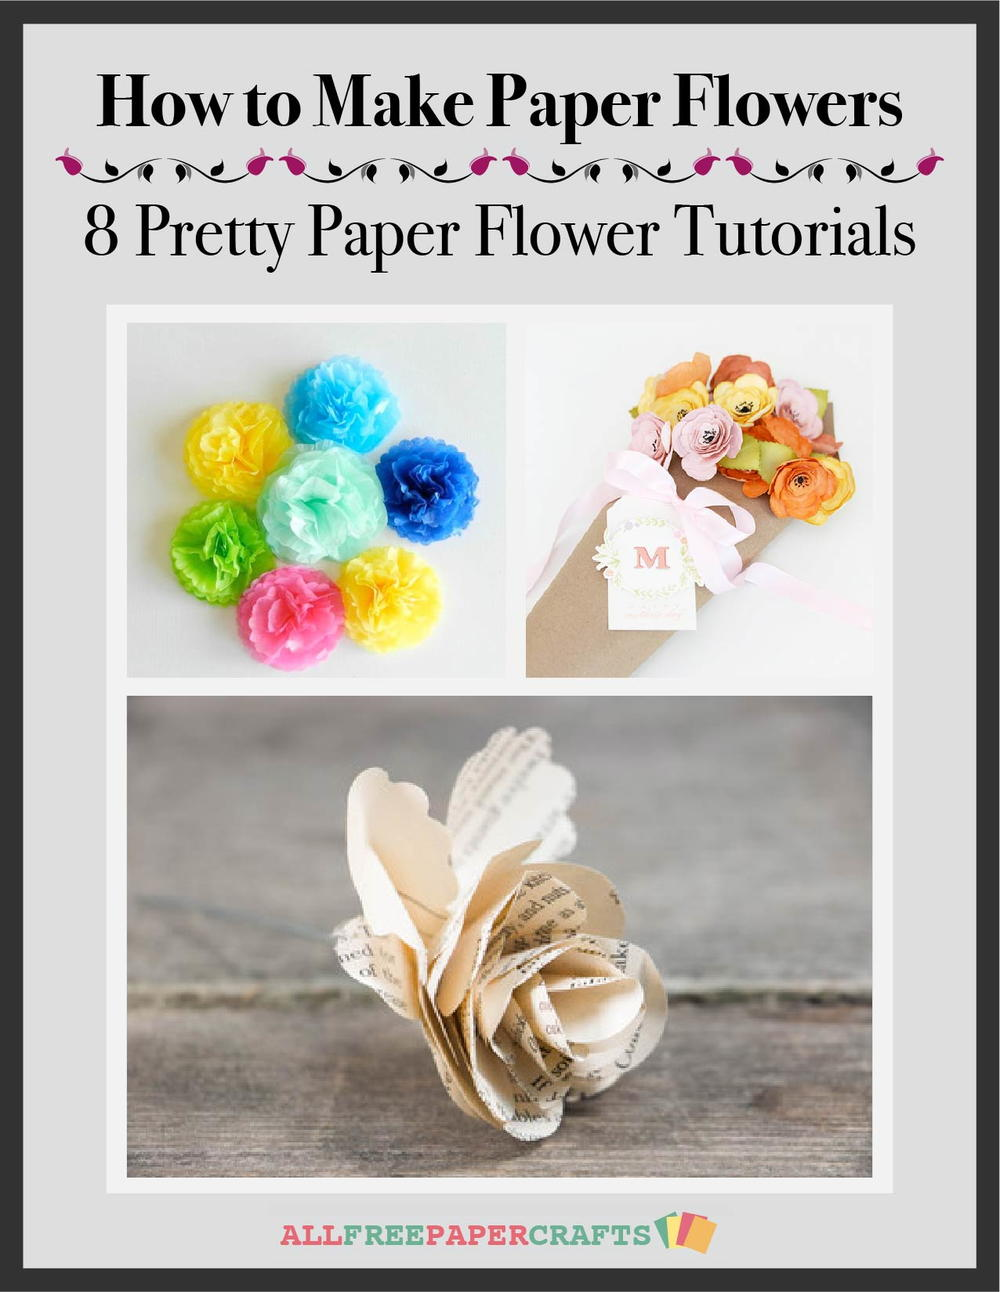 Happy birthday butterfly card allfreepapercrafts com - How To Make Paper Flowers 8 Pretty Paper Flower Tutorials Free Ebook